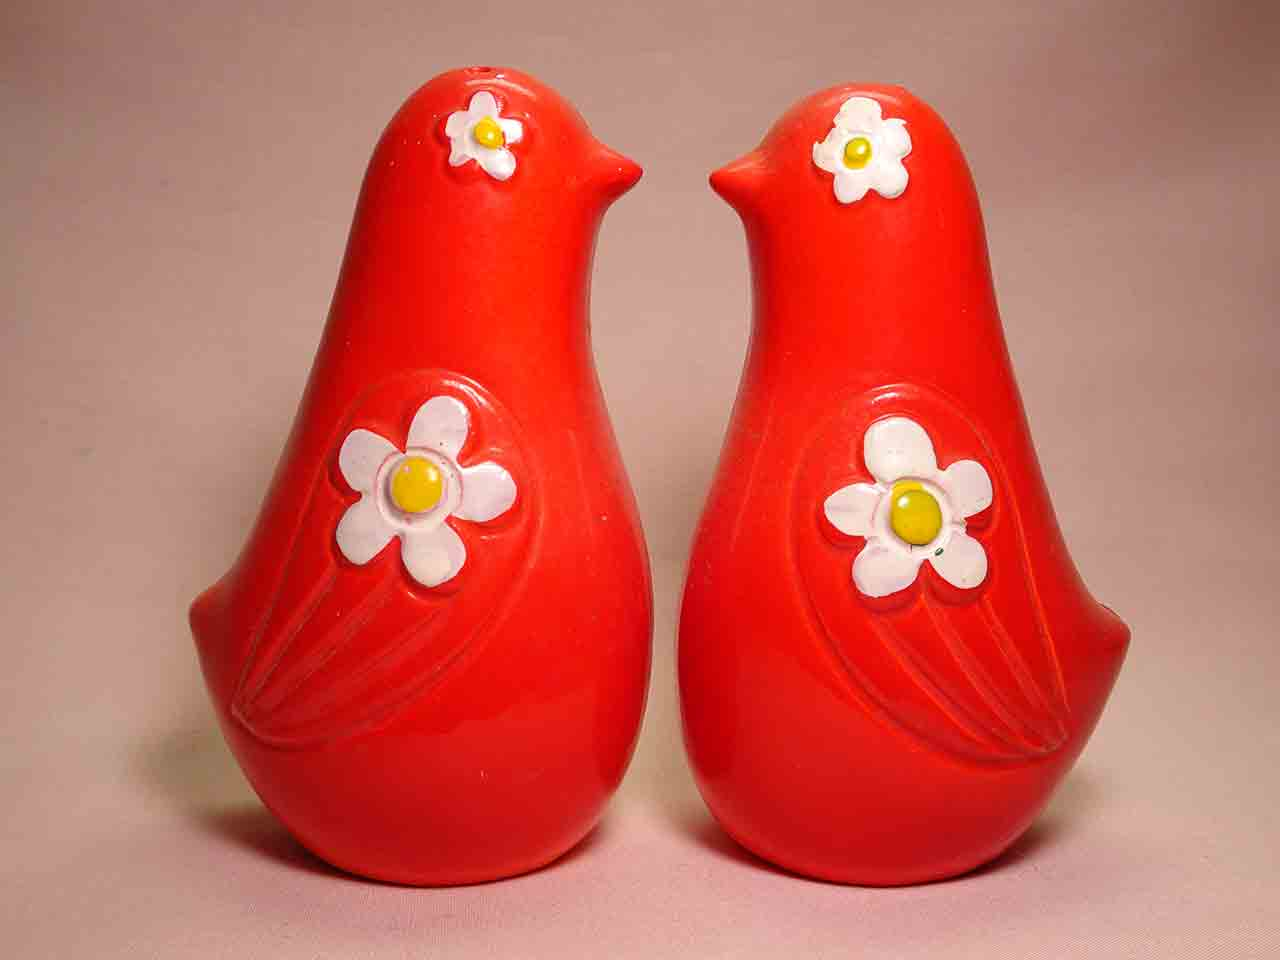 Birds with flower eyes salt and pepper shakers